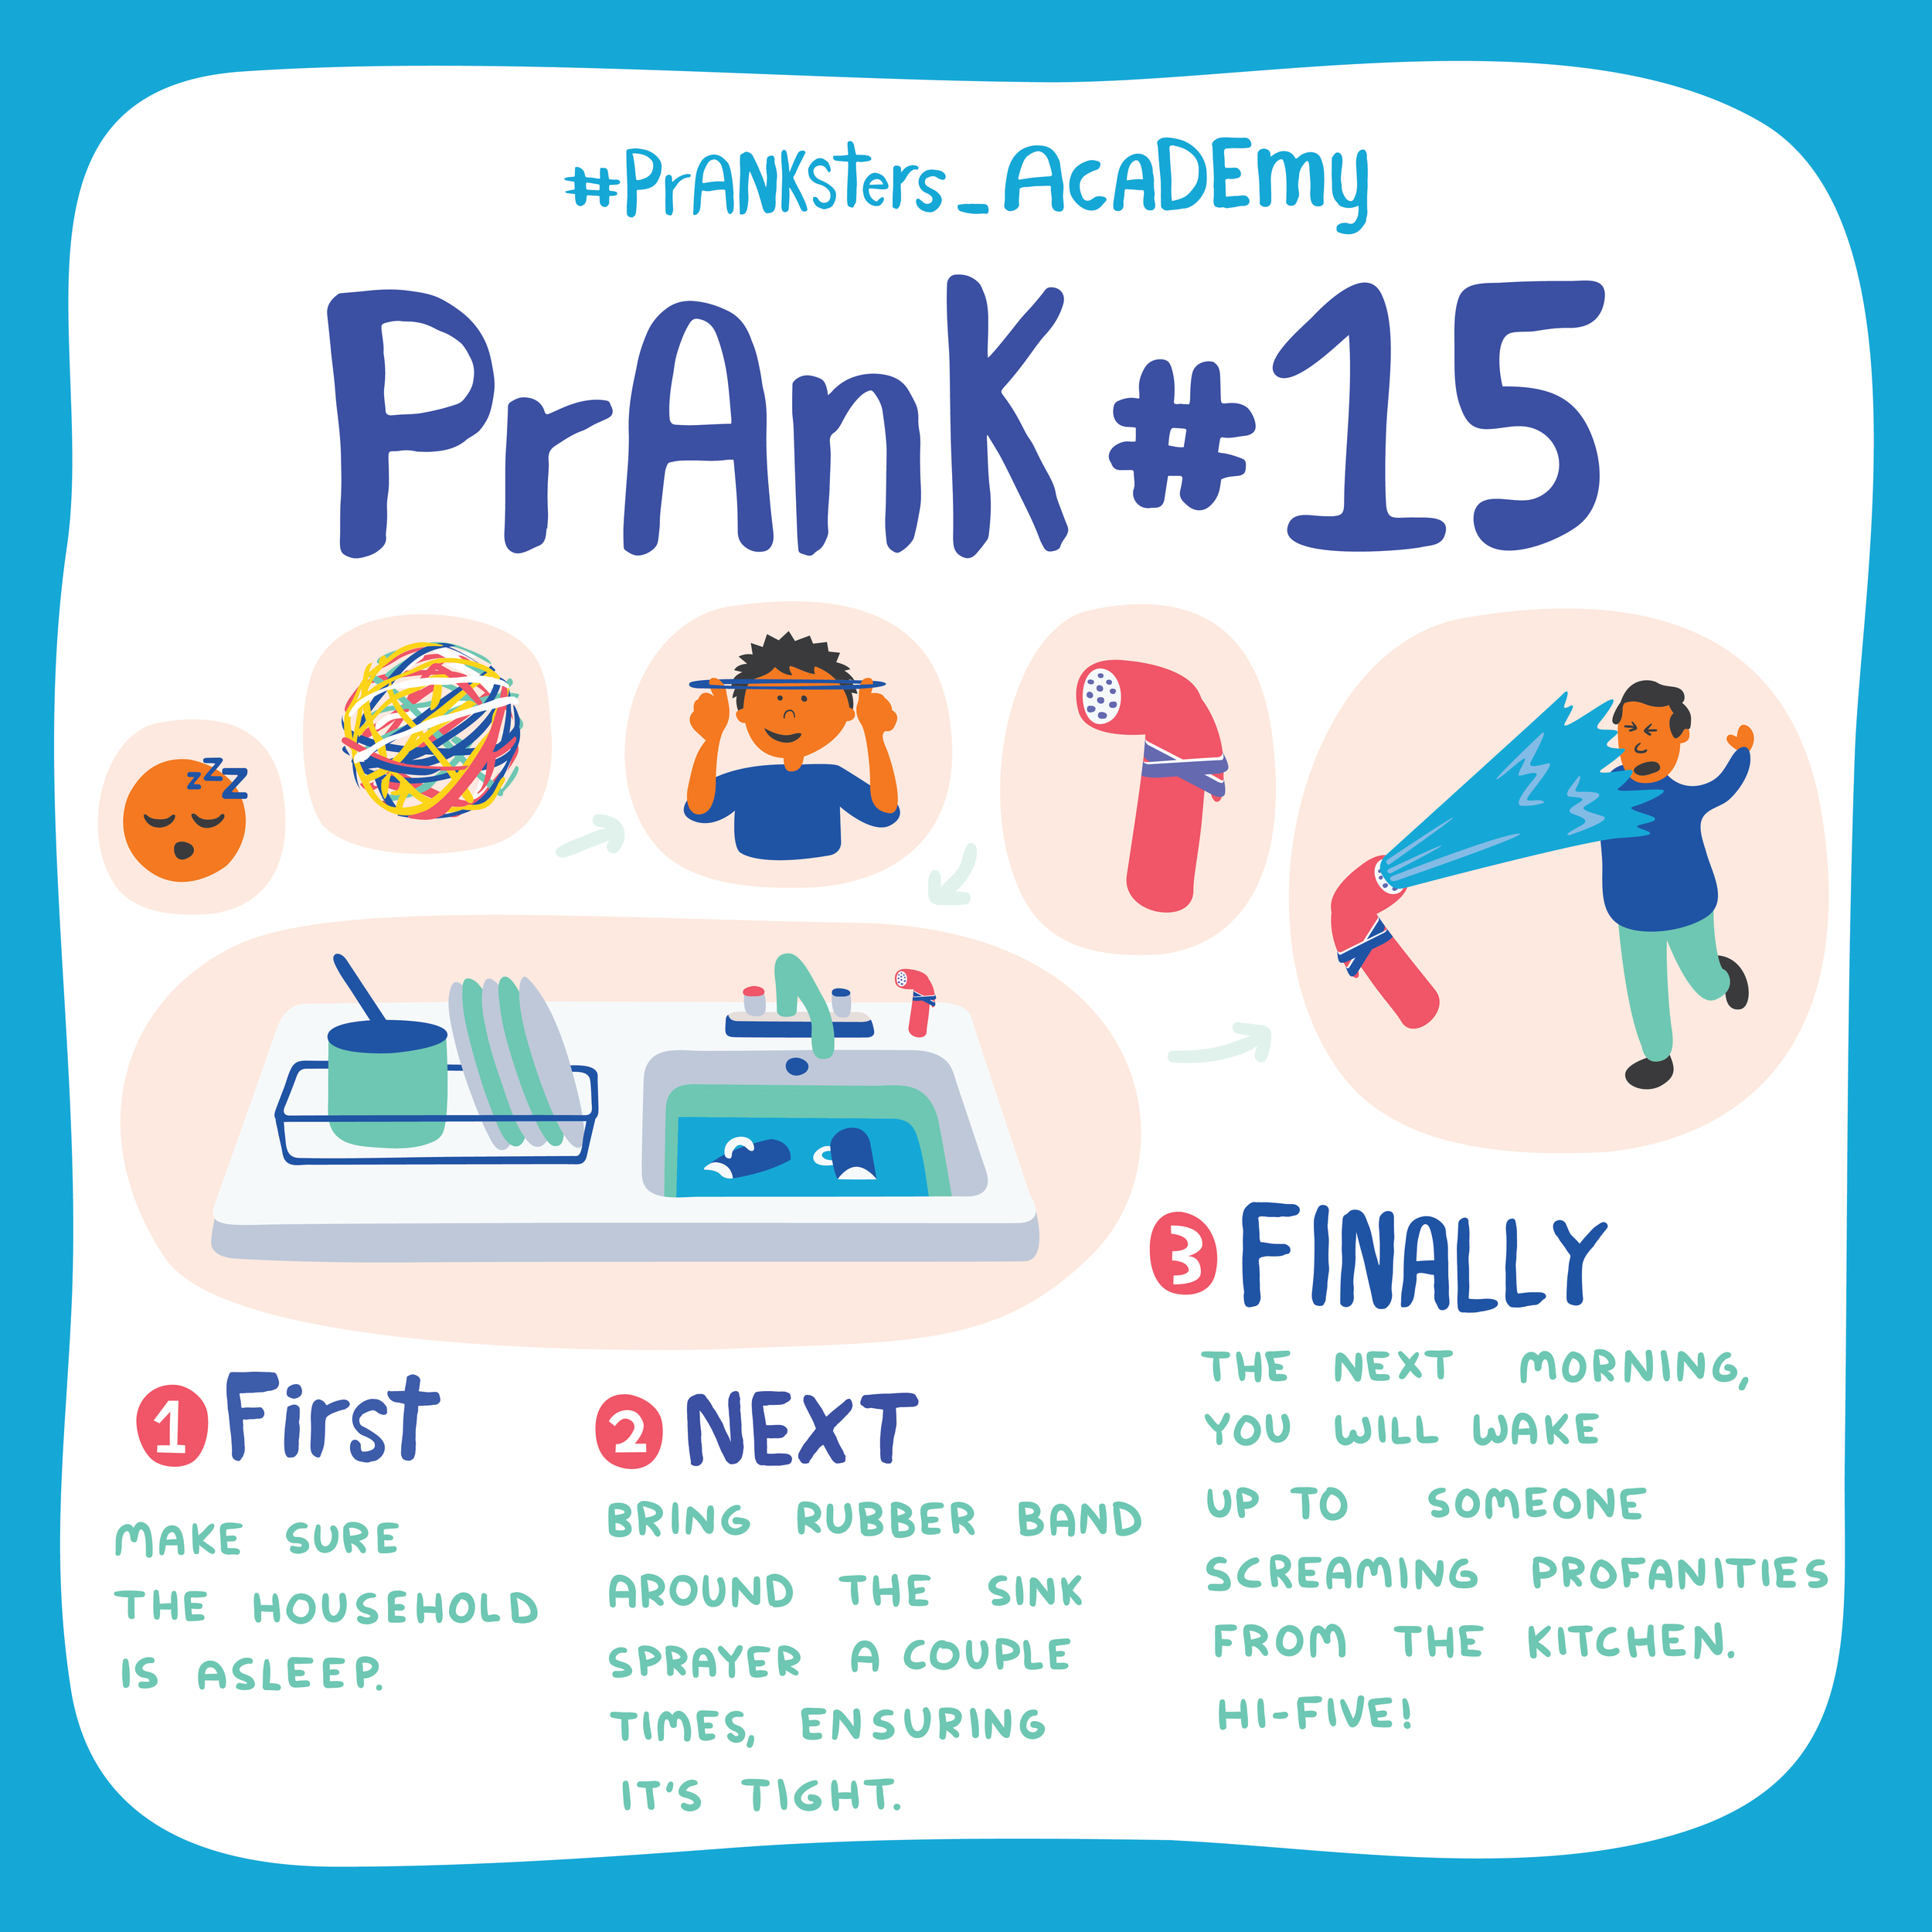 Prank #15: Rubber Band Spray